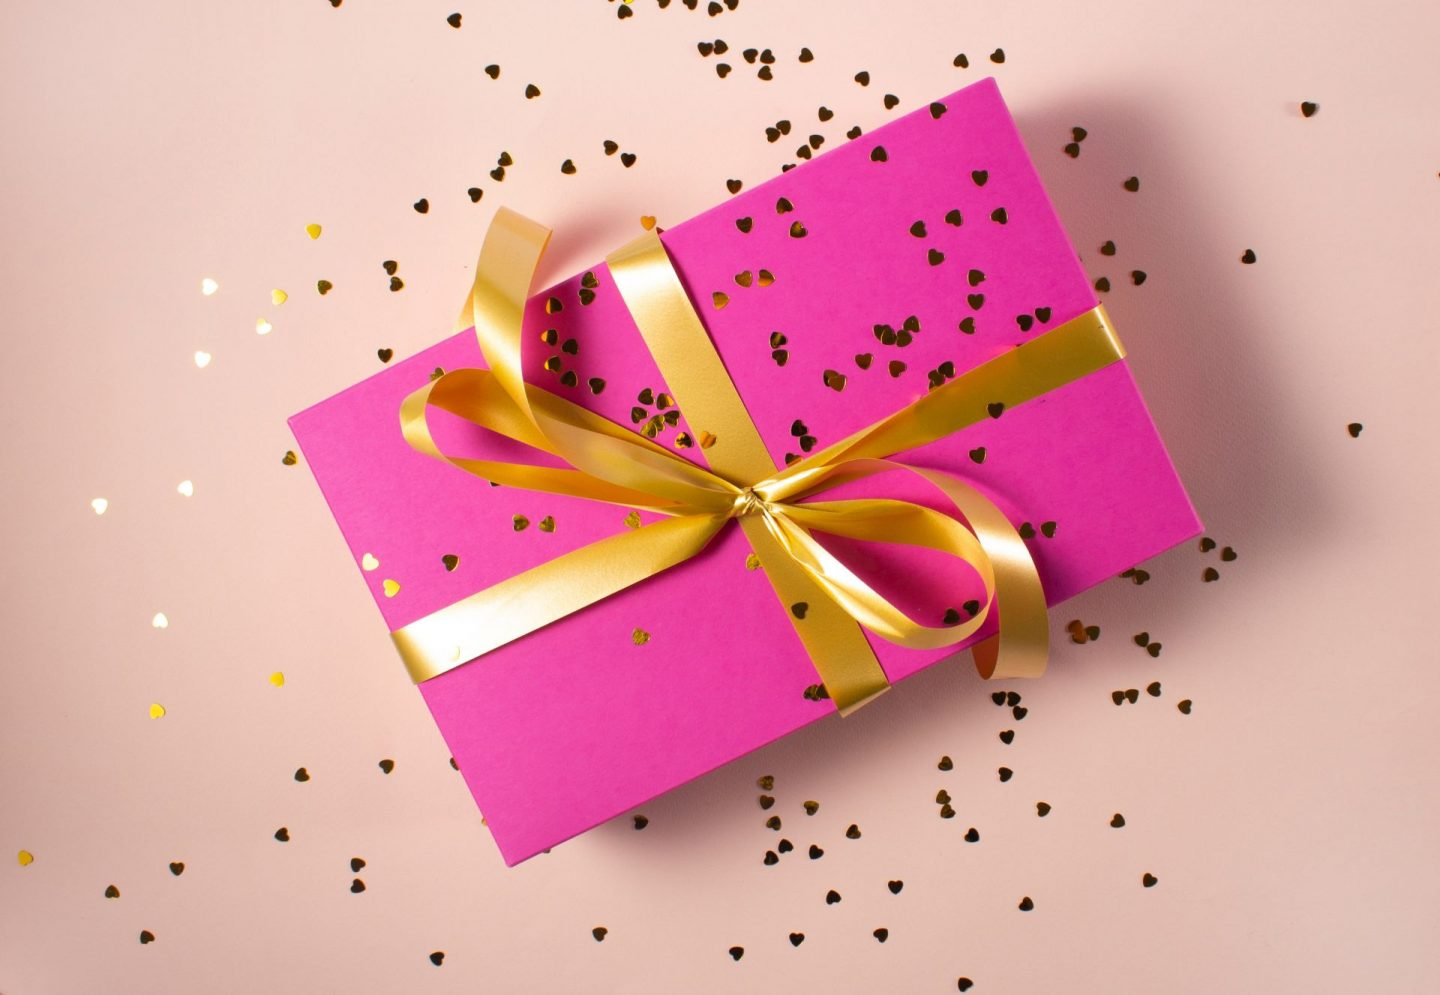 , #AD How to Choose the Best Presents for Children